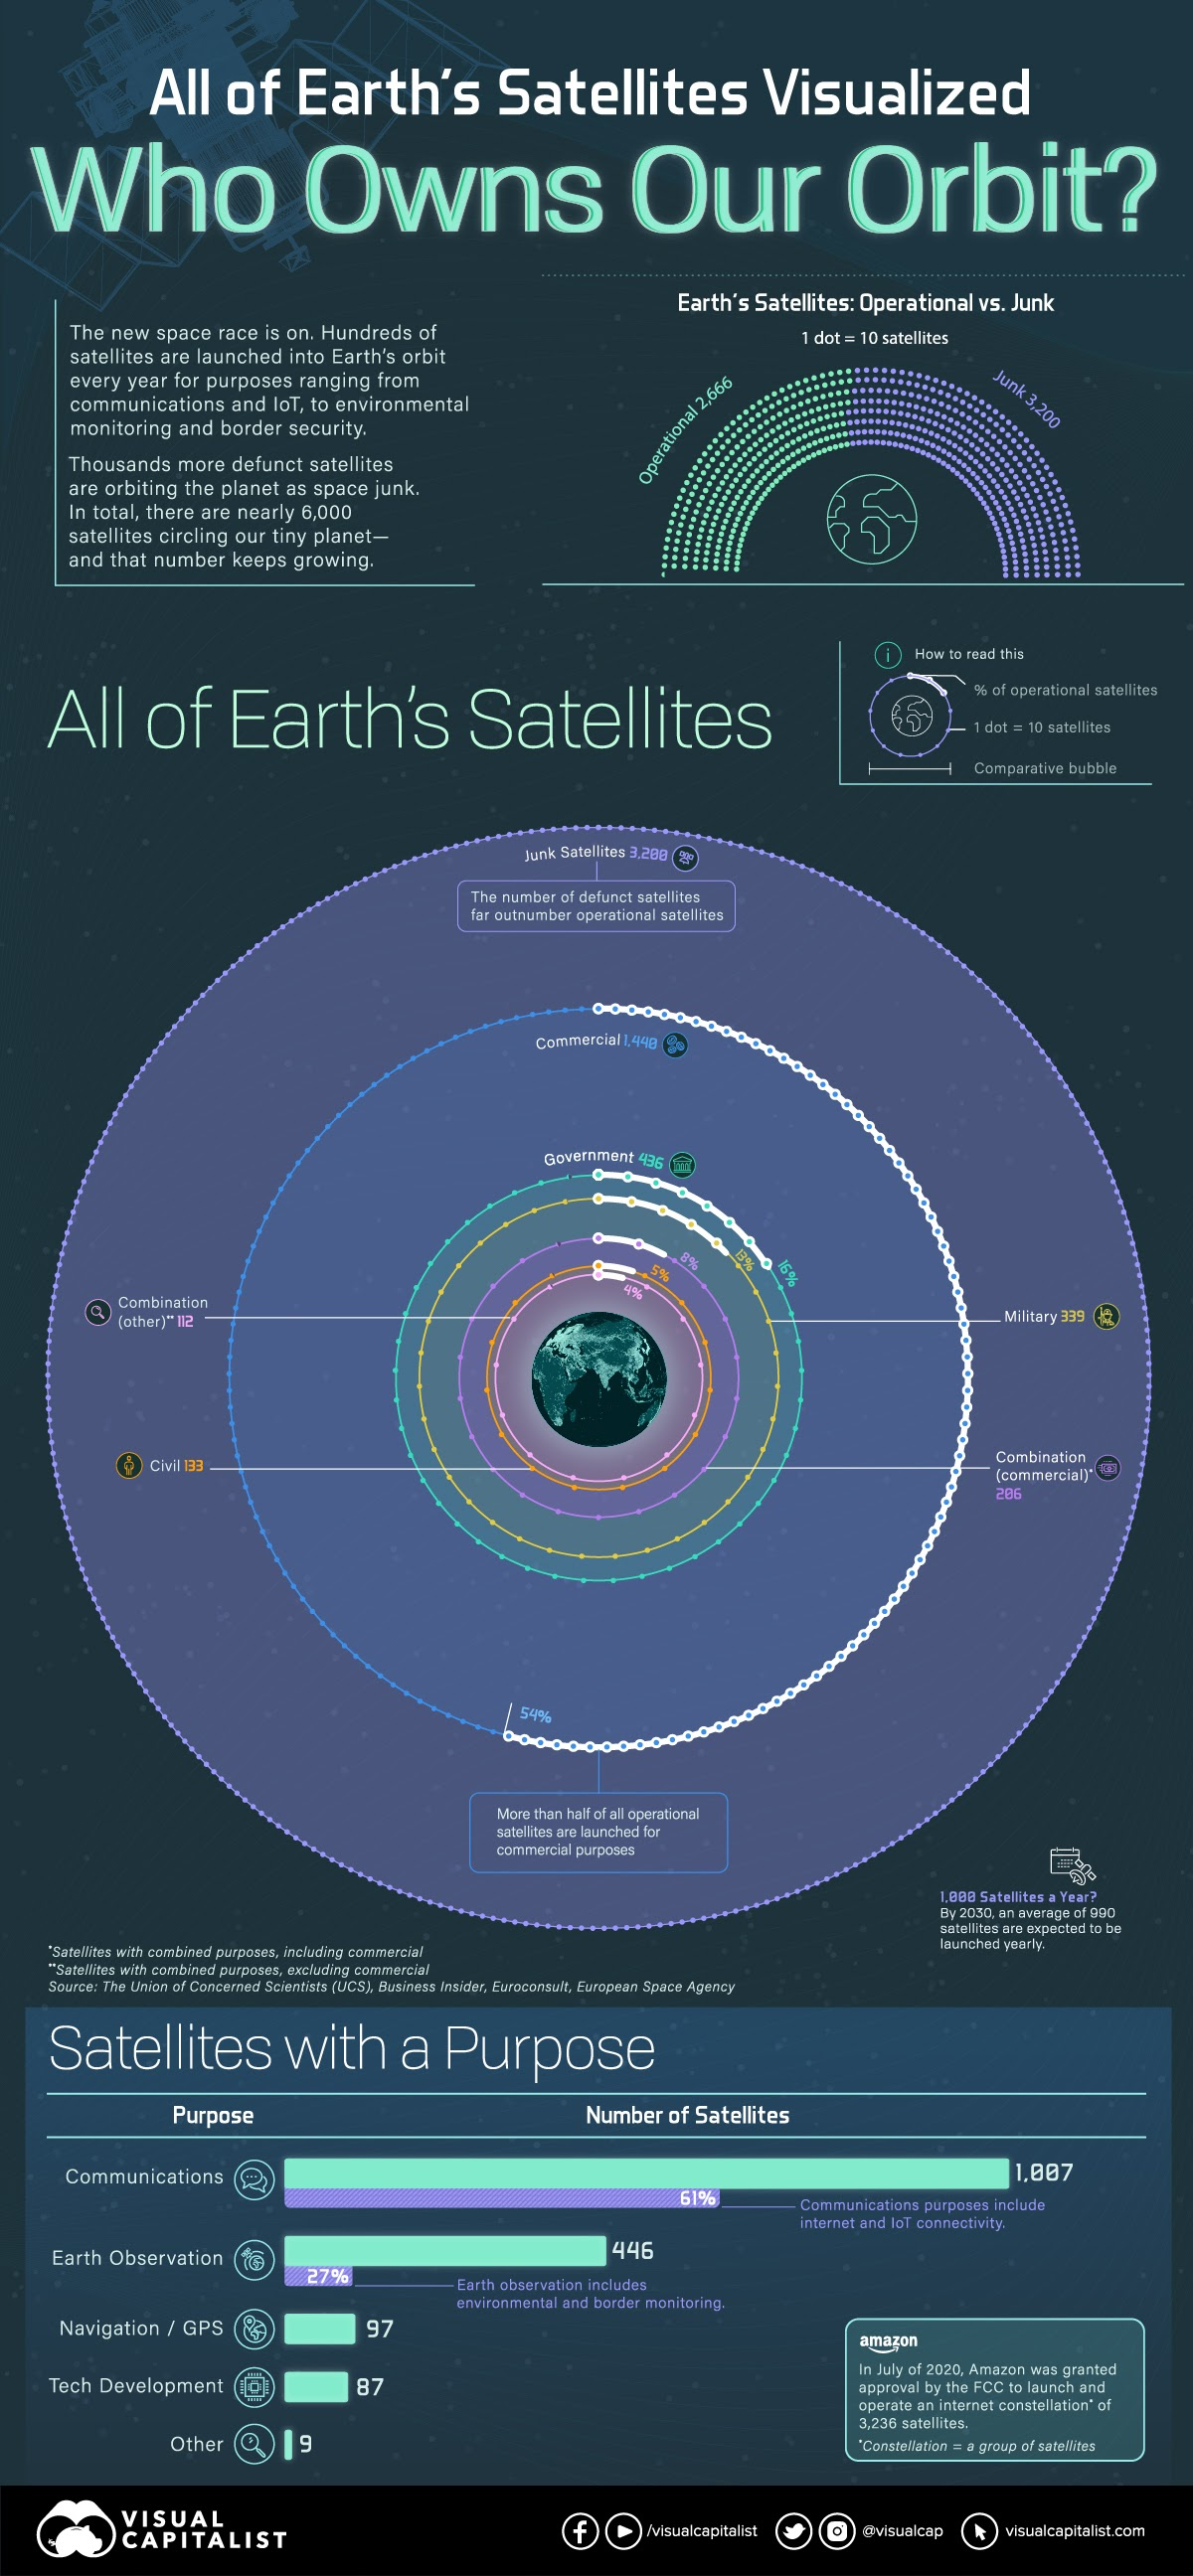 All of Earth's Satellites: Who Owns Our Orbit? #infographic